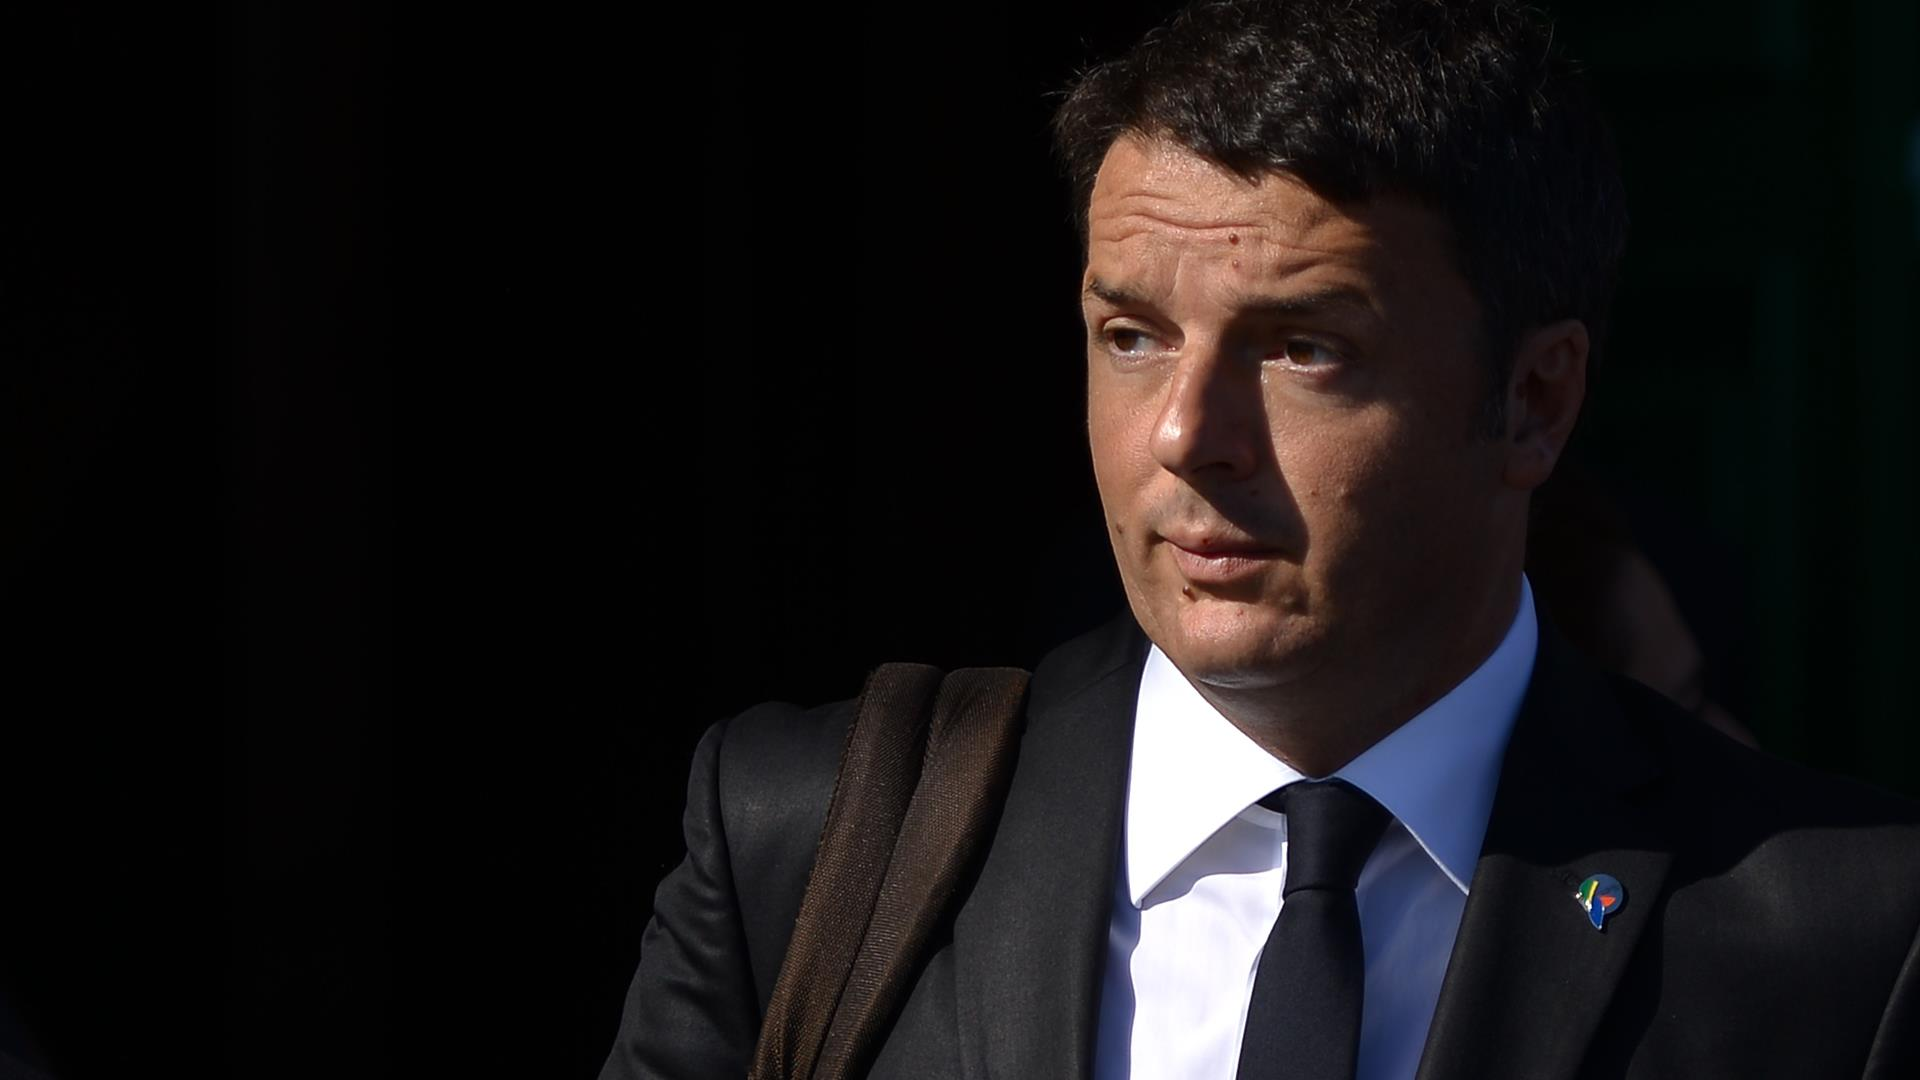 Renzi Summit UE Africa Valletta Migrazioni Getty